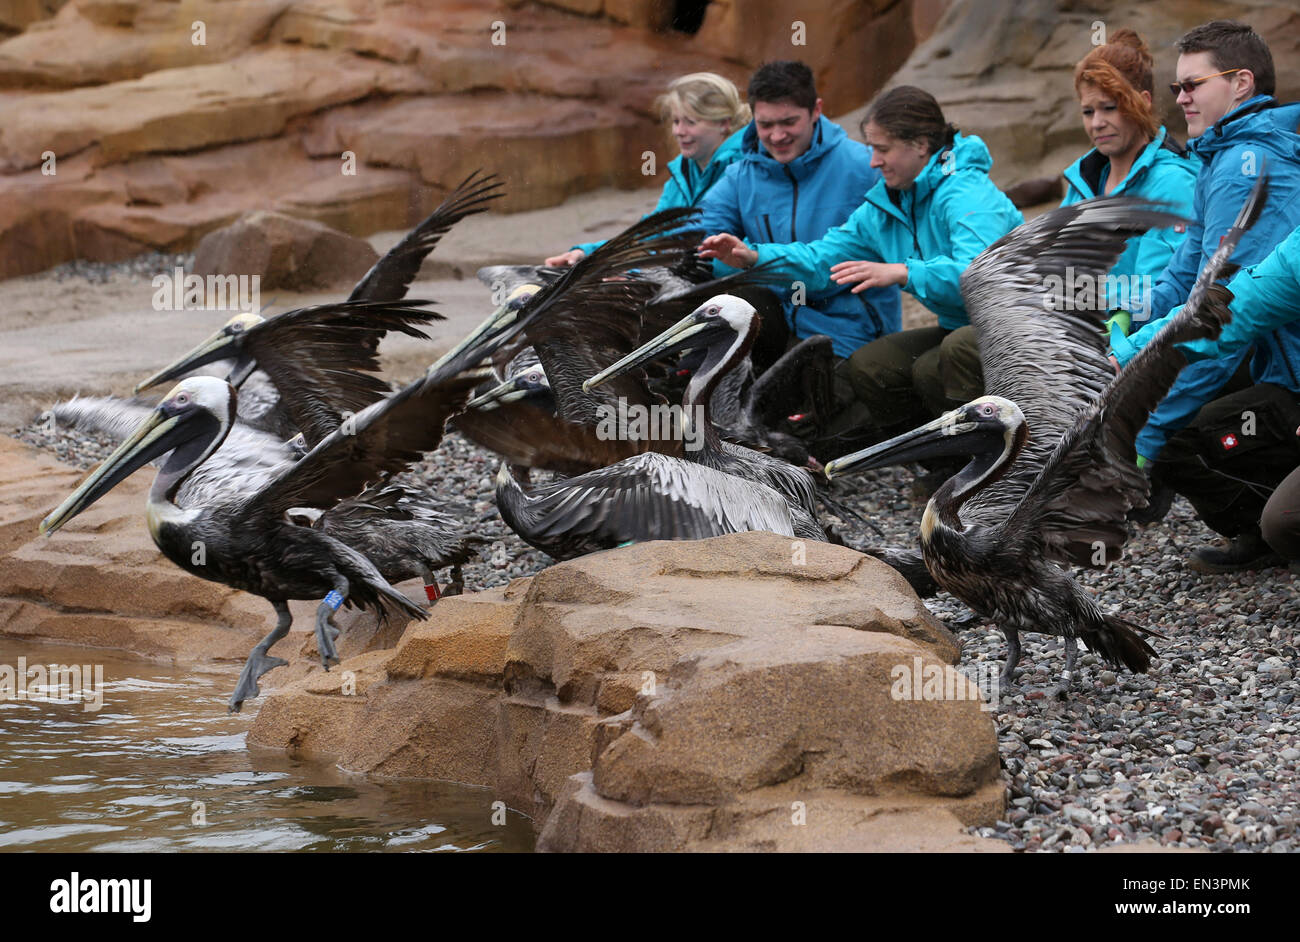 Staff members are helping a group of Humboldt penguins to get accustomed to their new enclosure at the bird park - Stock Image